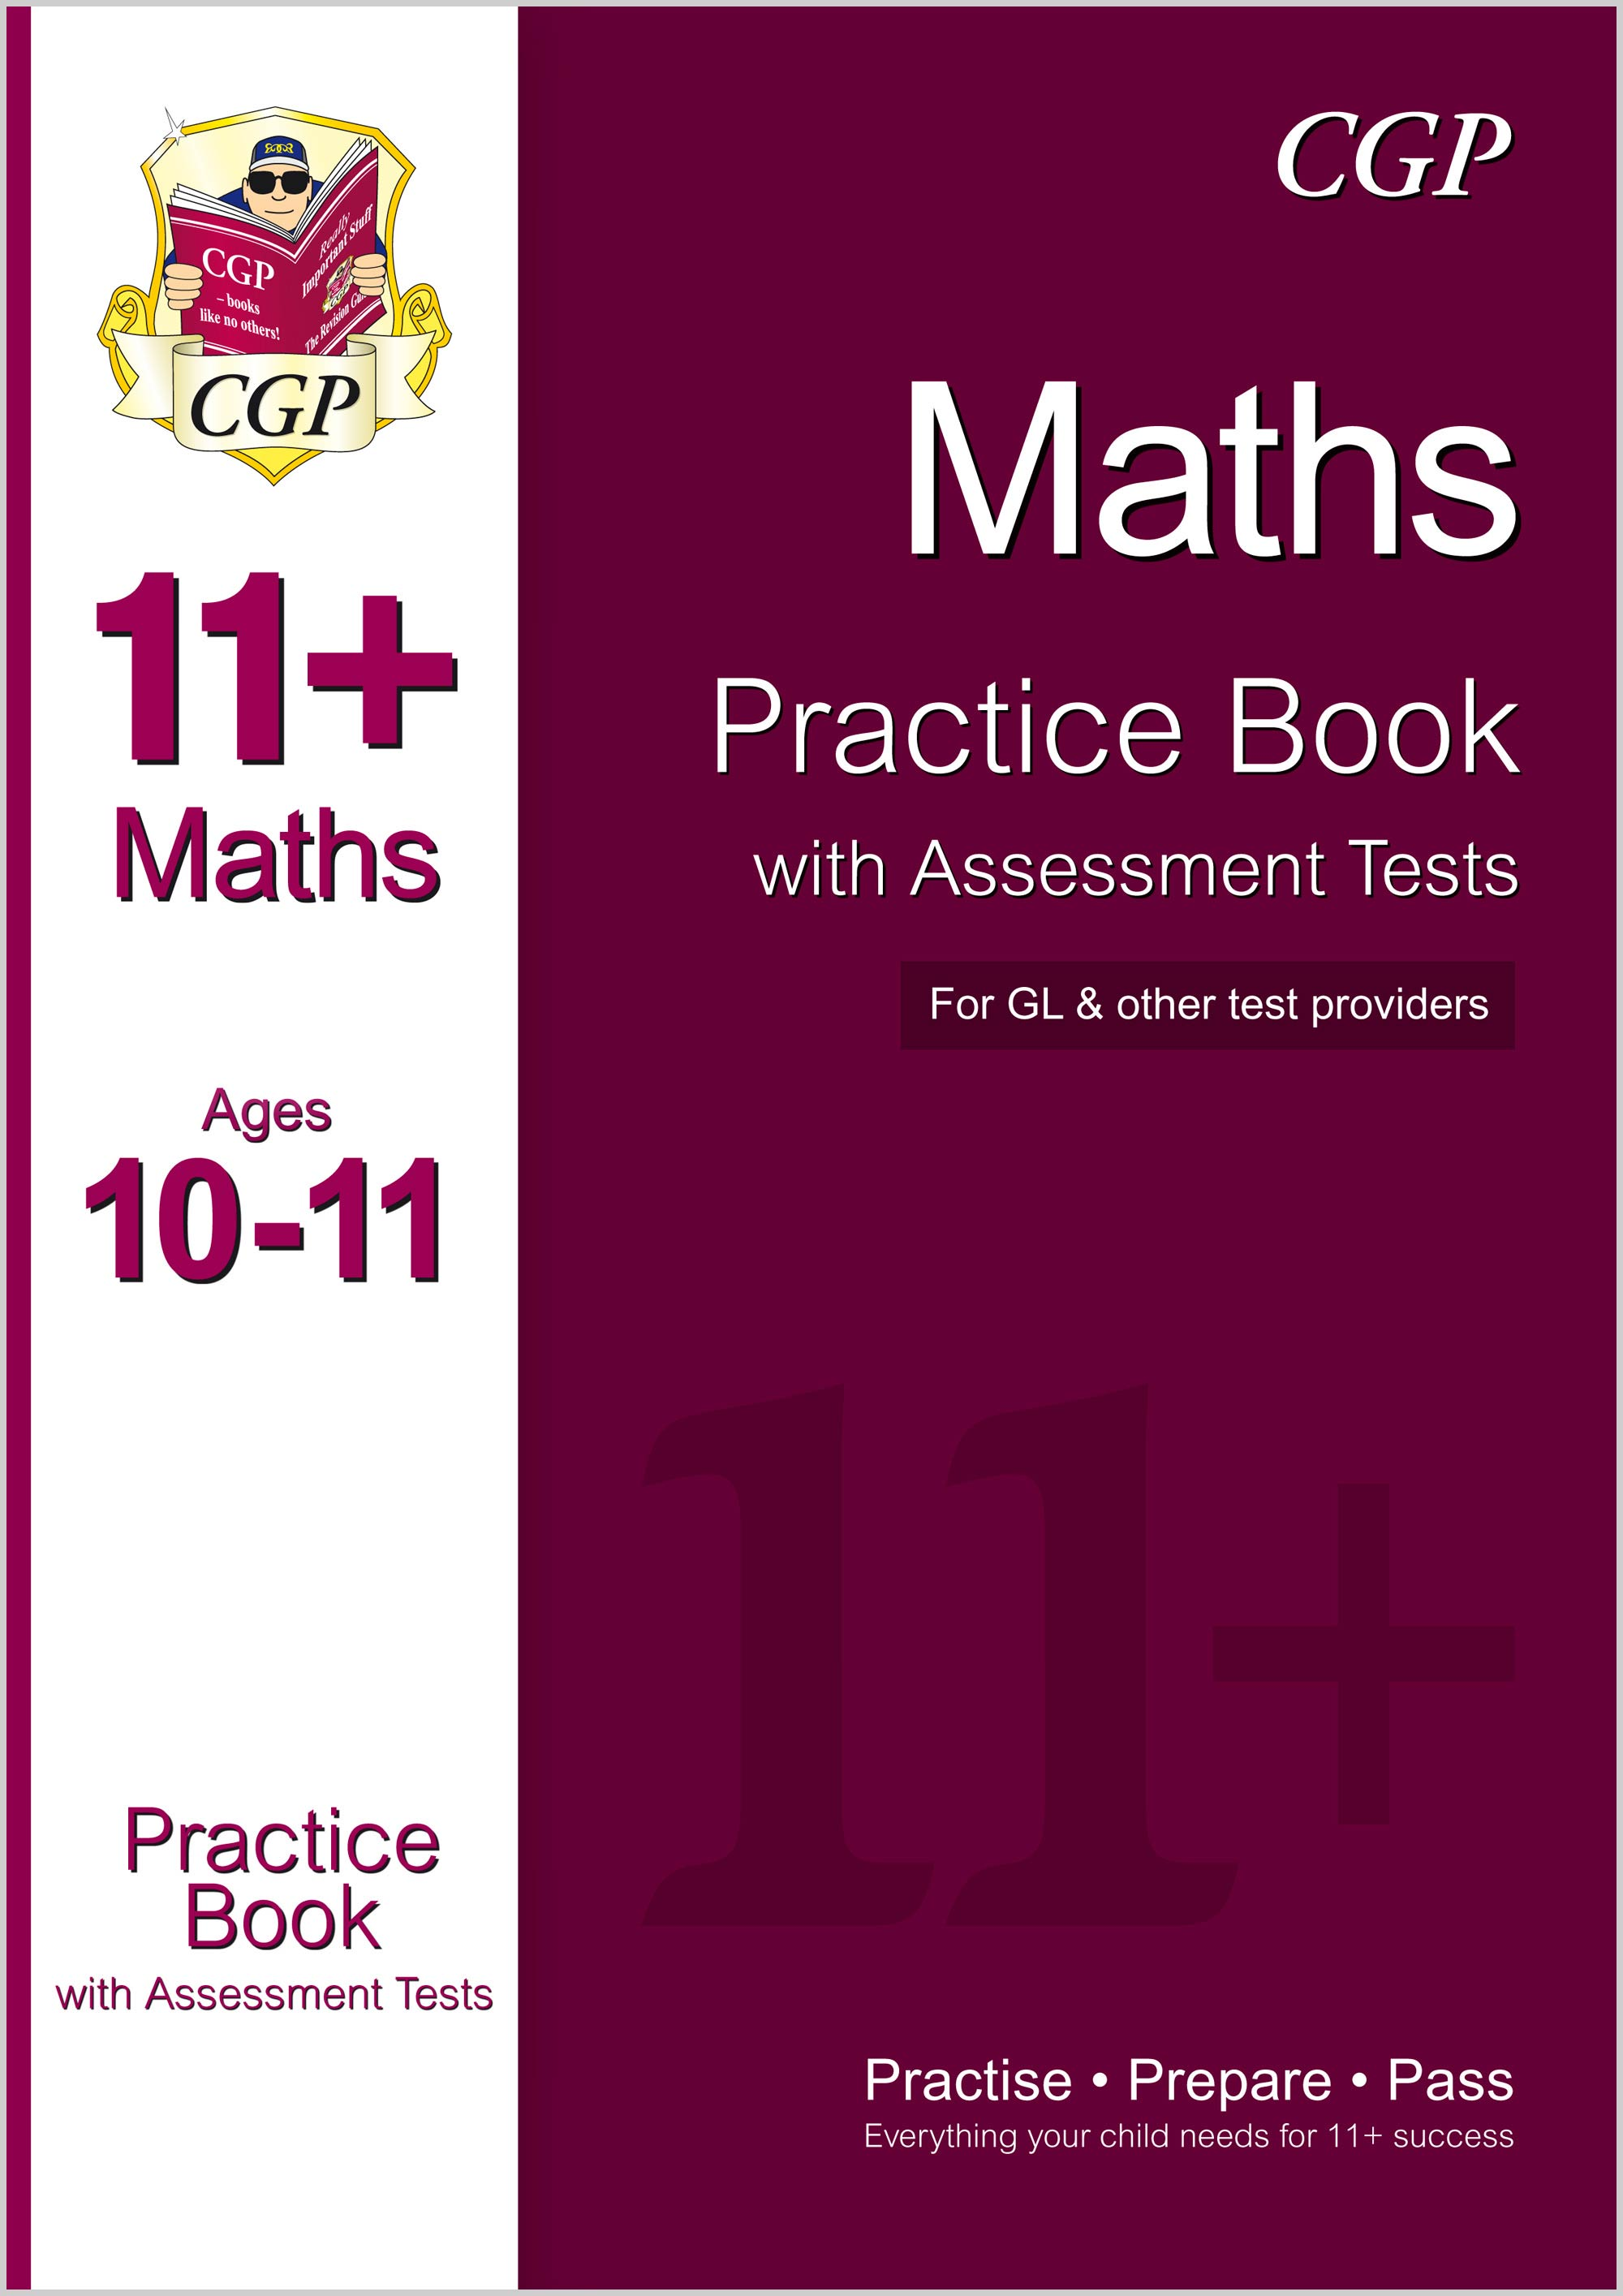 M6QE1 - 11+ Maths Practice Book with Assessment Tests Ages 10-11 (for GL & Other Test Providers)